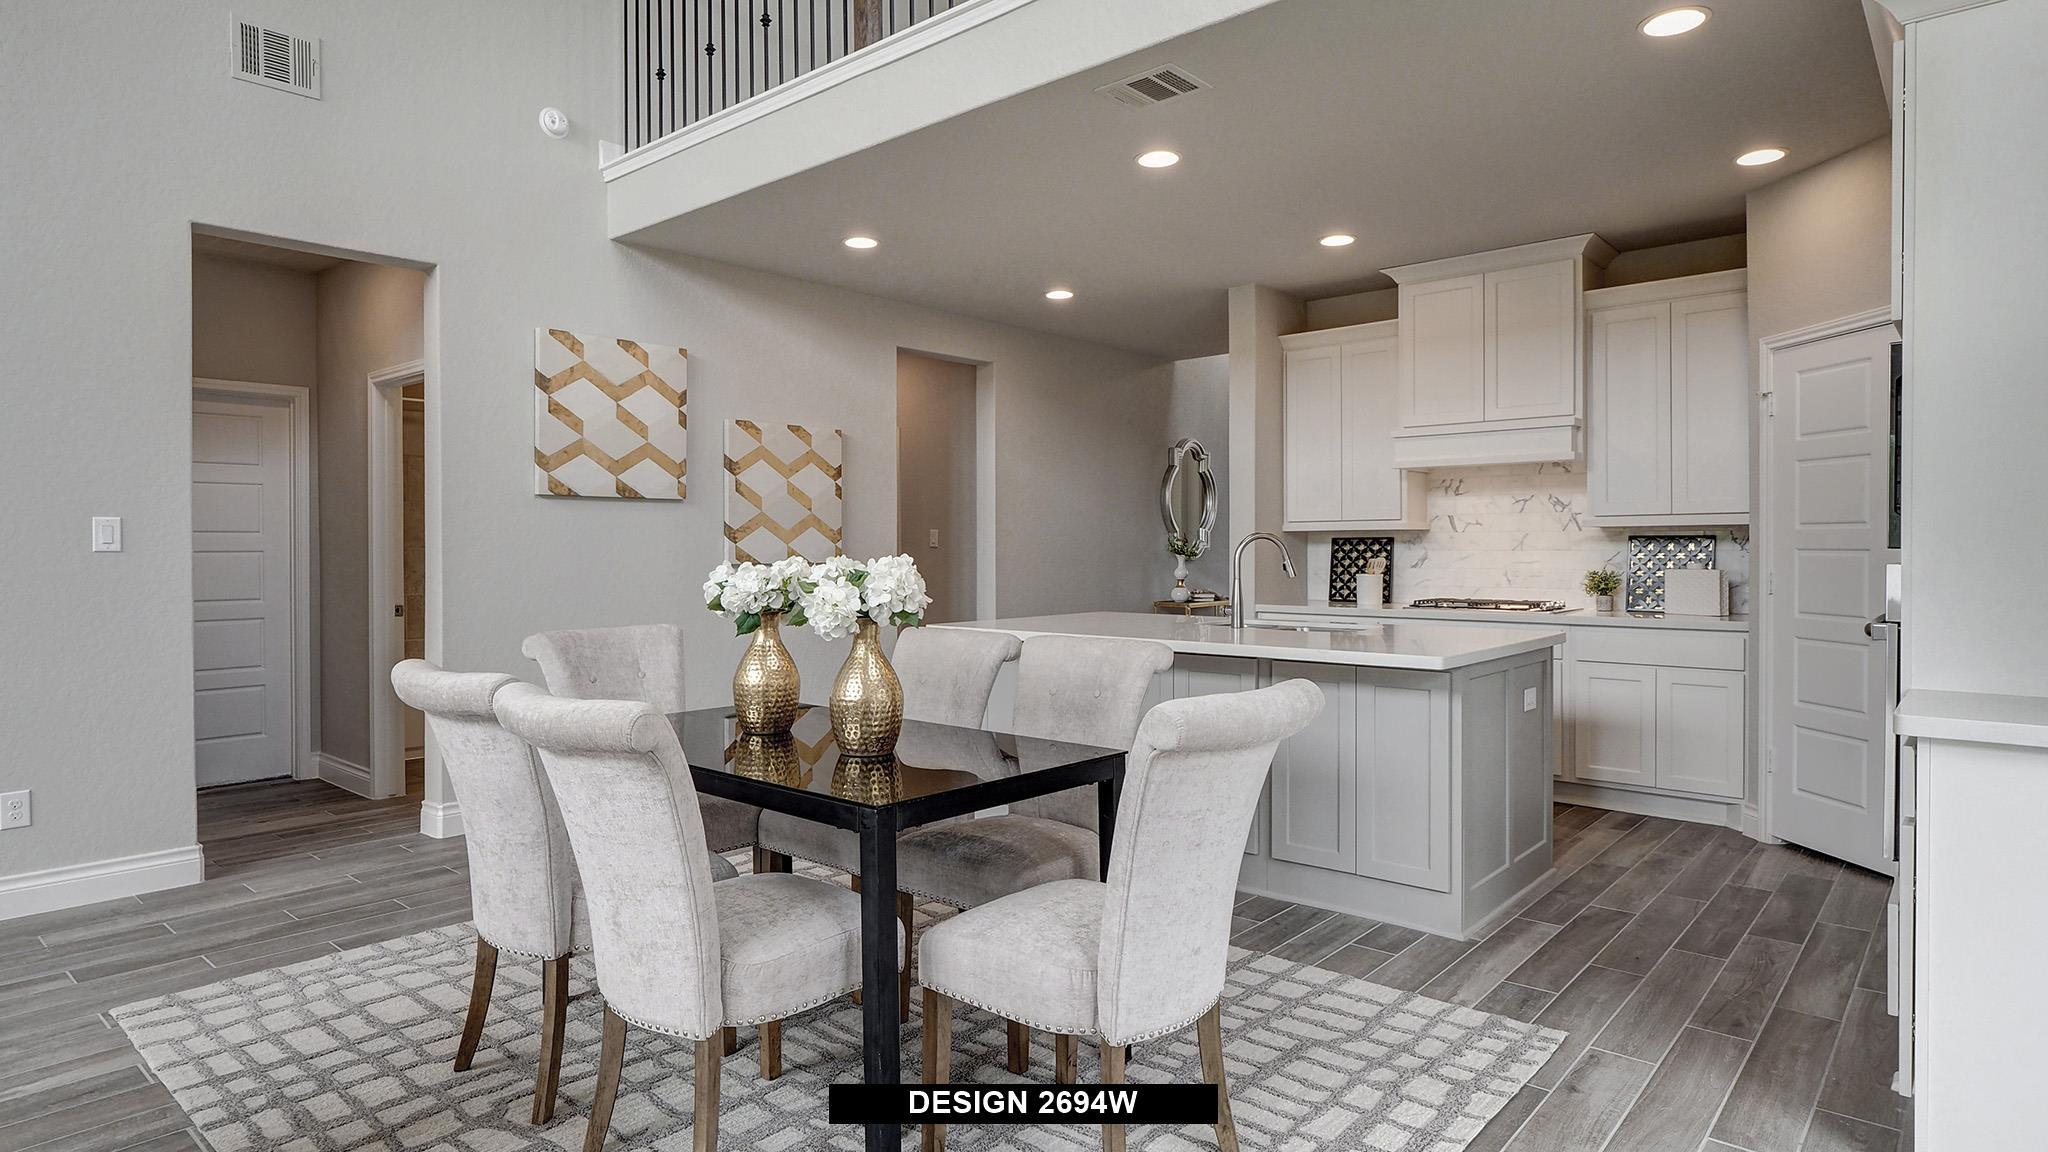 Kitchen featured in the 2694W By Perry Homes in Dallas, TX